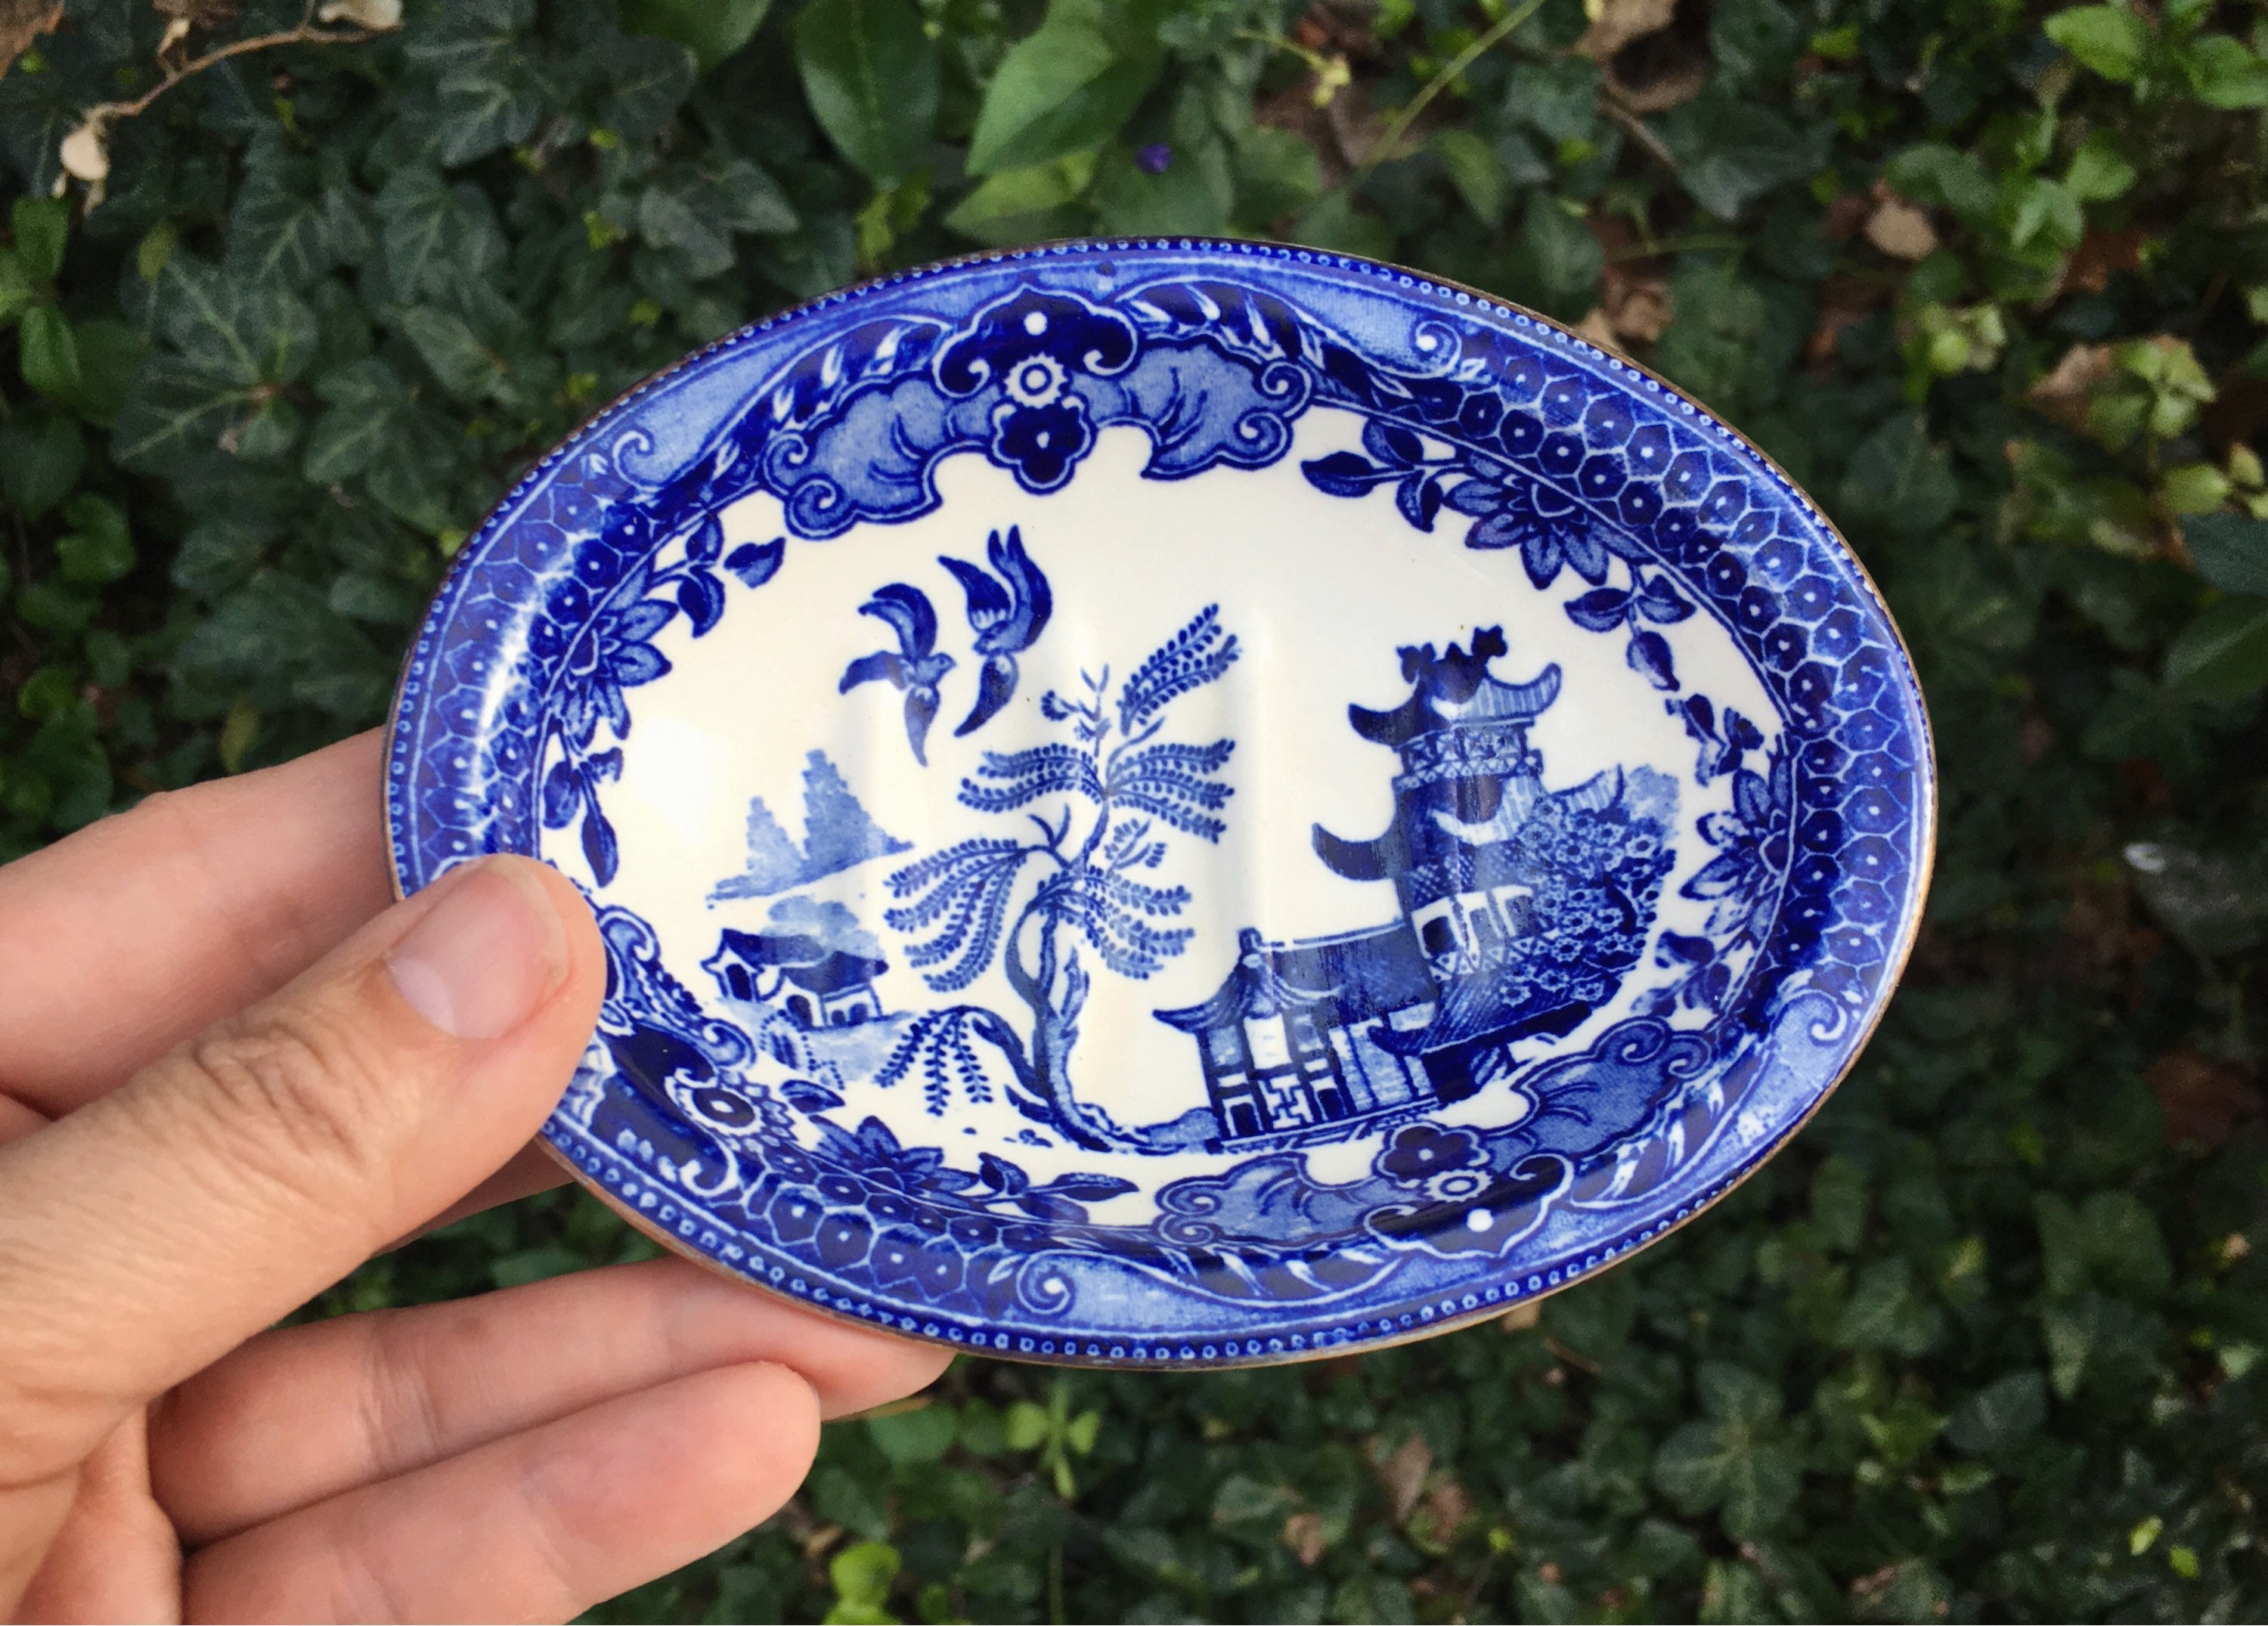 Beautiful Burslem England Porcelain Blue And White Plate-dish,willow Blue & White Transfer Ware Pottery